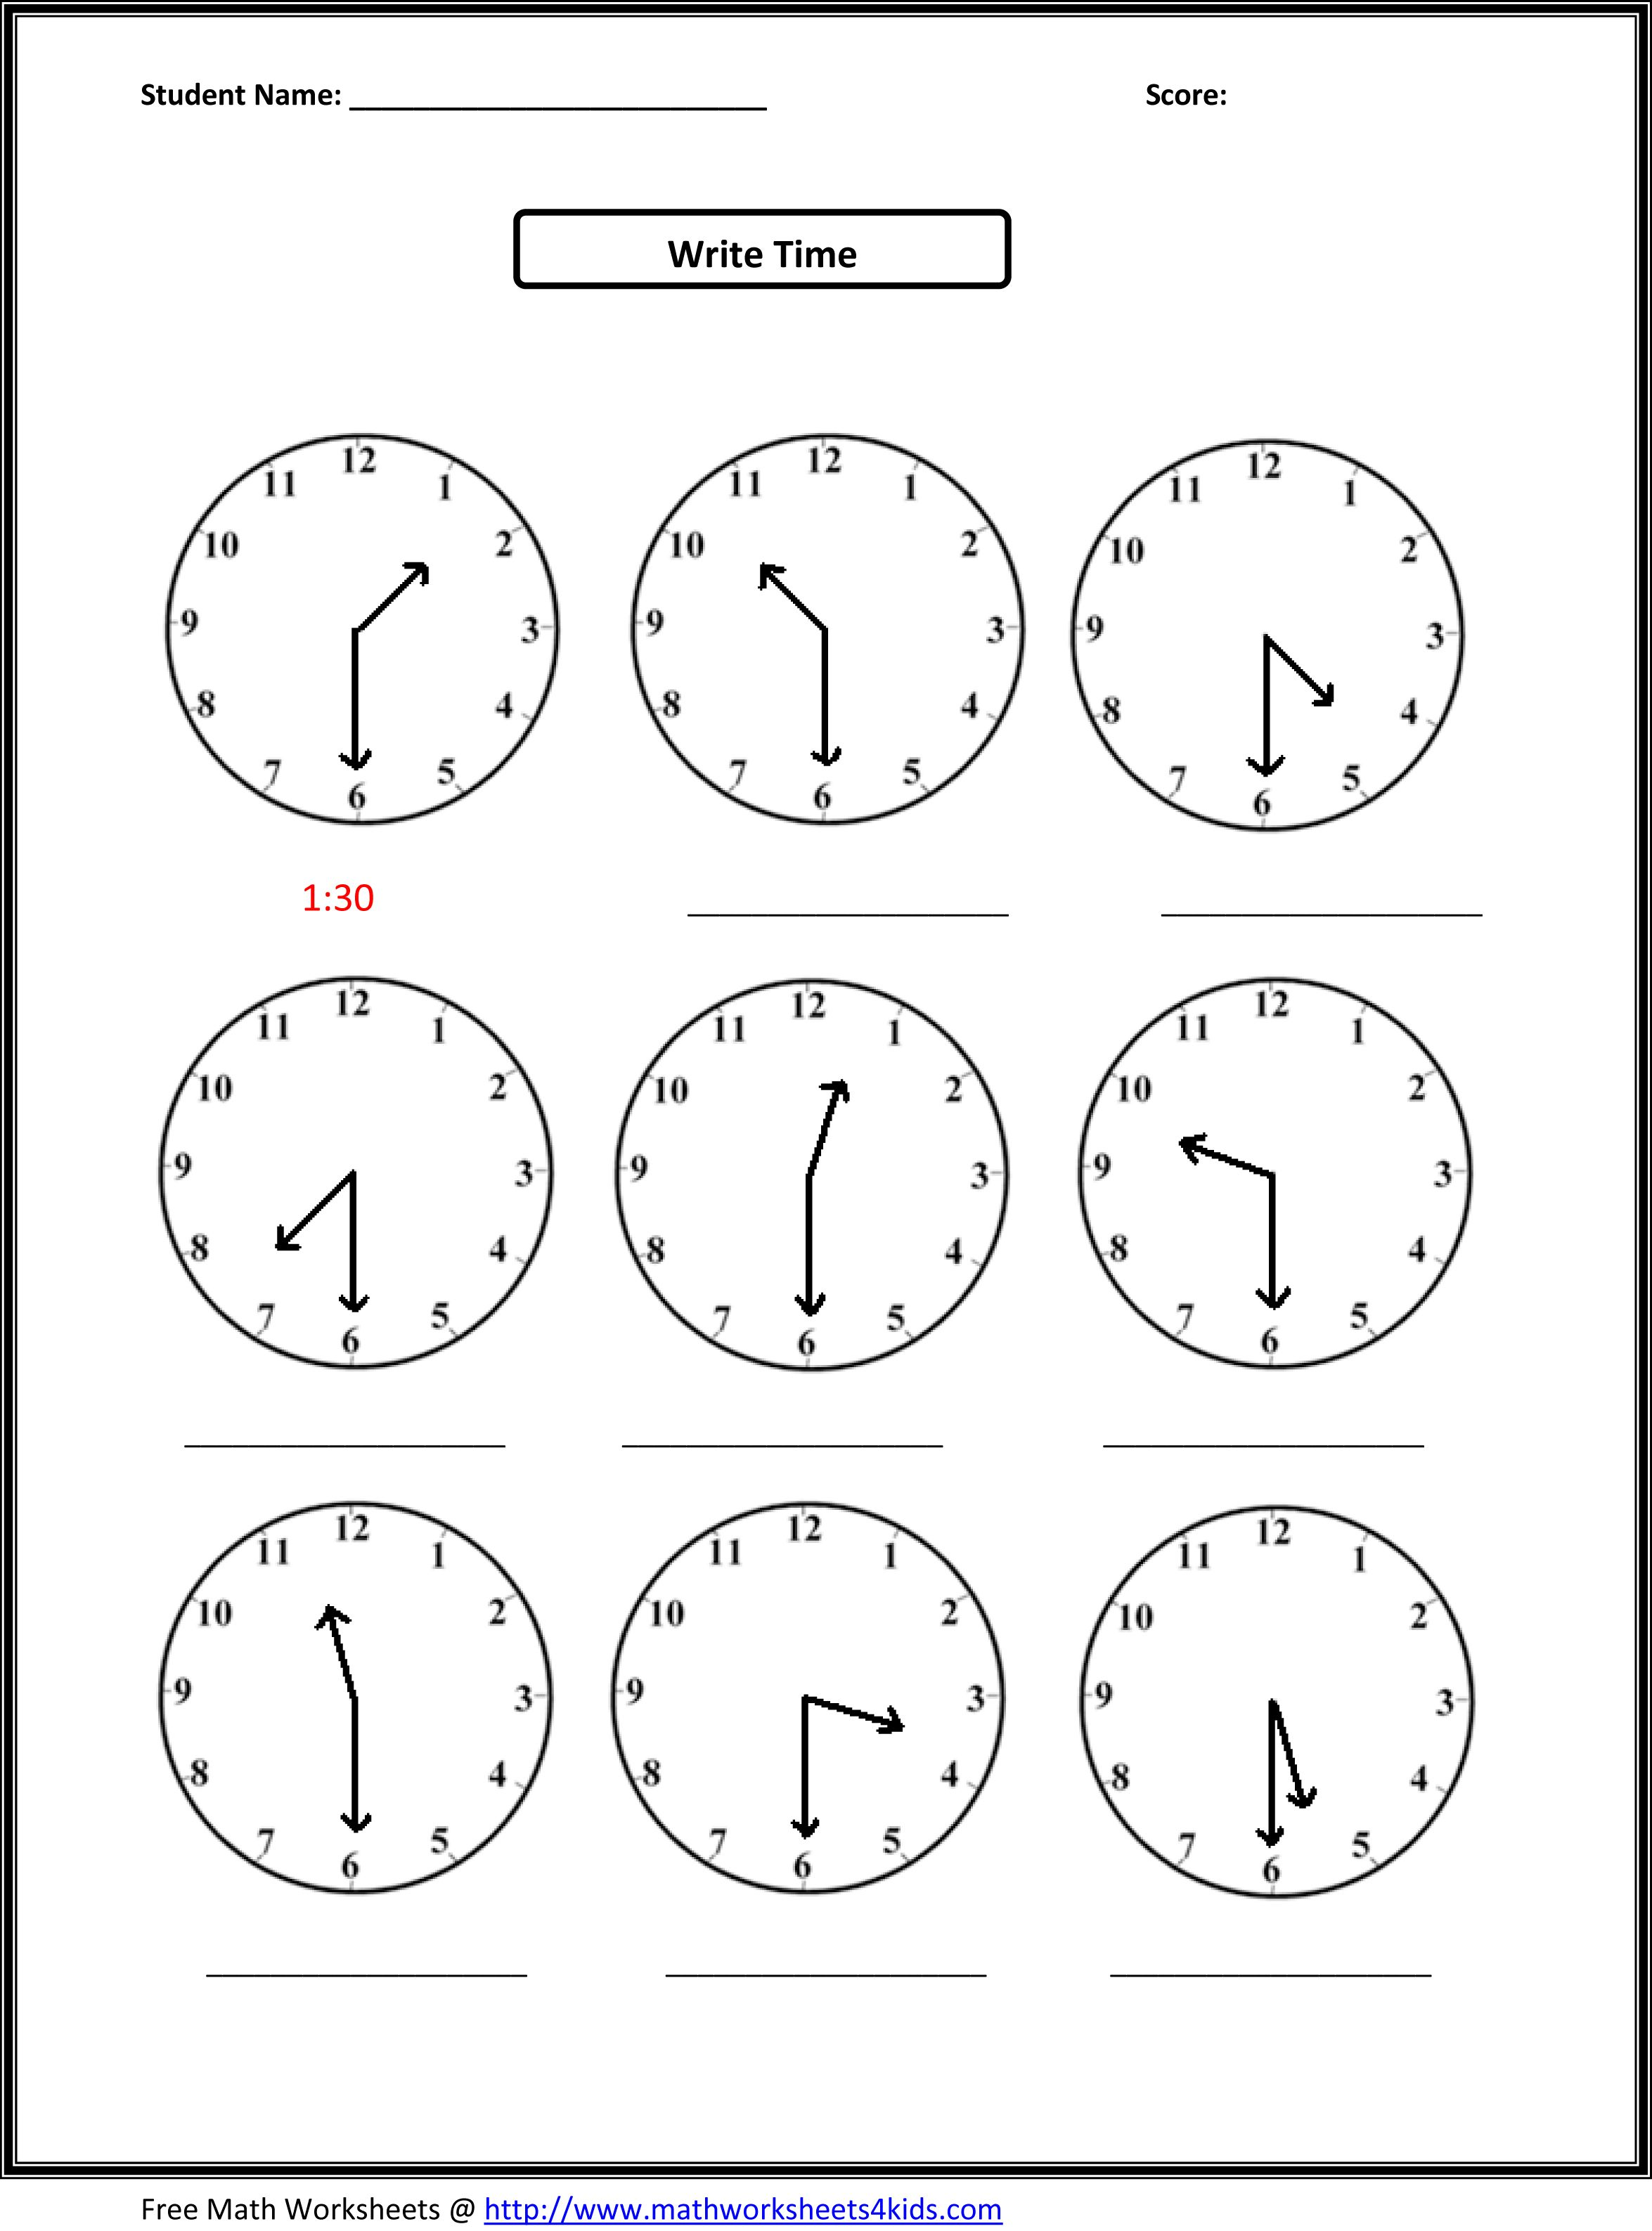 Weirdmailus  Personable Worksheet On Time For Grade   Reocurent With Hot Free Printable Telling Time Worksheets Nd Grade  Reocurent With Amazing Factoring Simple Trinomials Worksheet Also Intensive And Reflexive Pronouns Worksheet In Addition Exponential And Logarithmic Equations And Inequalities Worksheet And Kindergarten Subtraction Worksheets With Pictures As Well As Daily Oral Language Worksheets Th Grade Additionally Writing Similes And Metaphors Worksheet From Reocurentcom With Weirdmailus  Hot Worksheet On Time For Grade   Reocurent With Amazing Free Printable Telling Time Worksheets Nd Grade  Reocurent And Personable Factoring Simple Trinomials Worksheet Also Intensive And Reflexive Pronouns Worksheet In Addition Exponential And Logarithmic Equations And Inequalities Worksheet From Reocurentcom